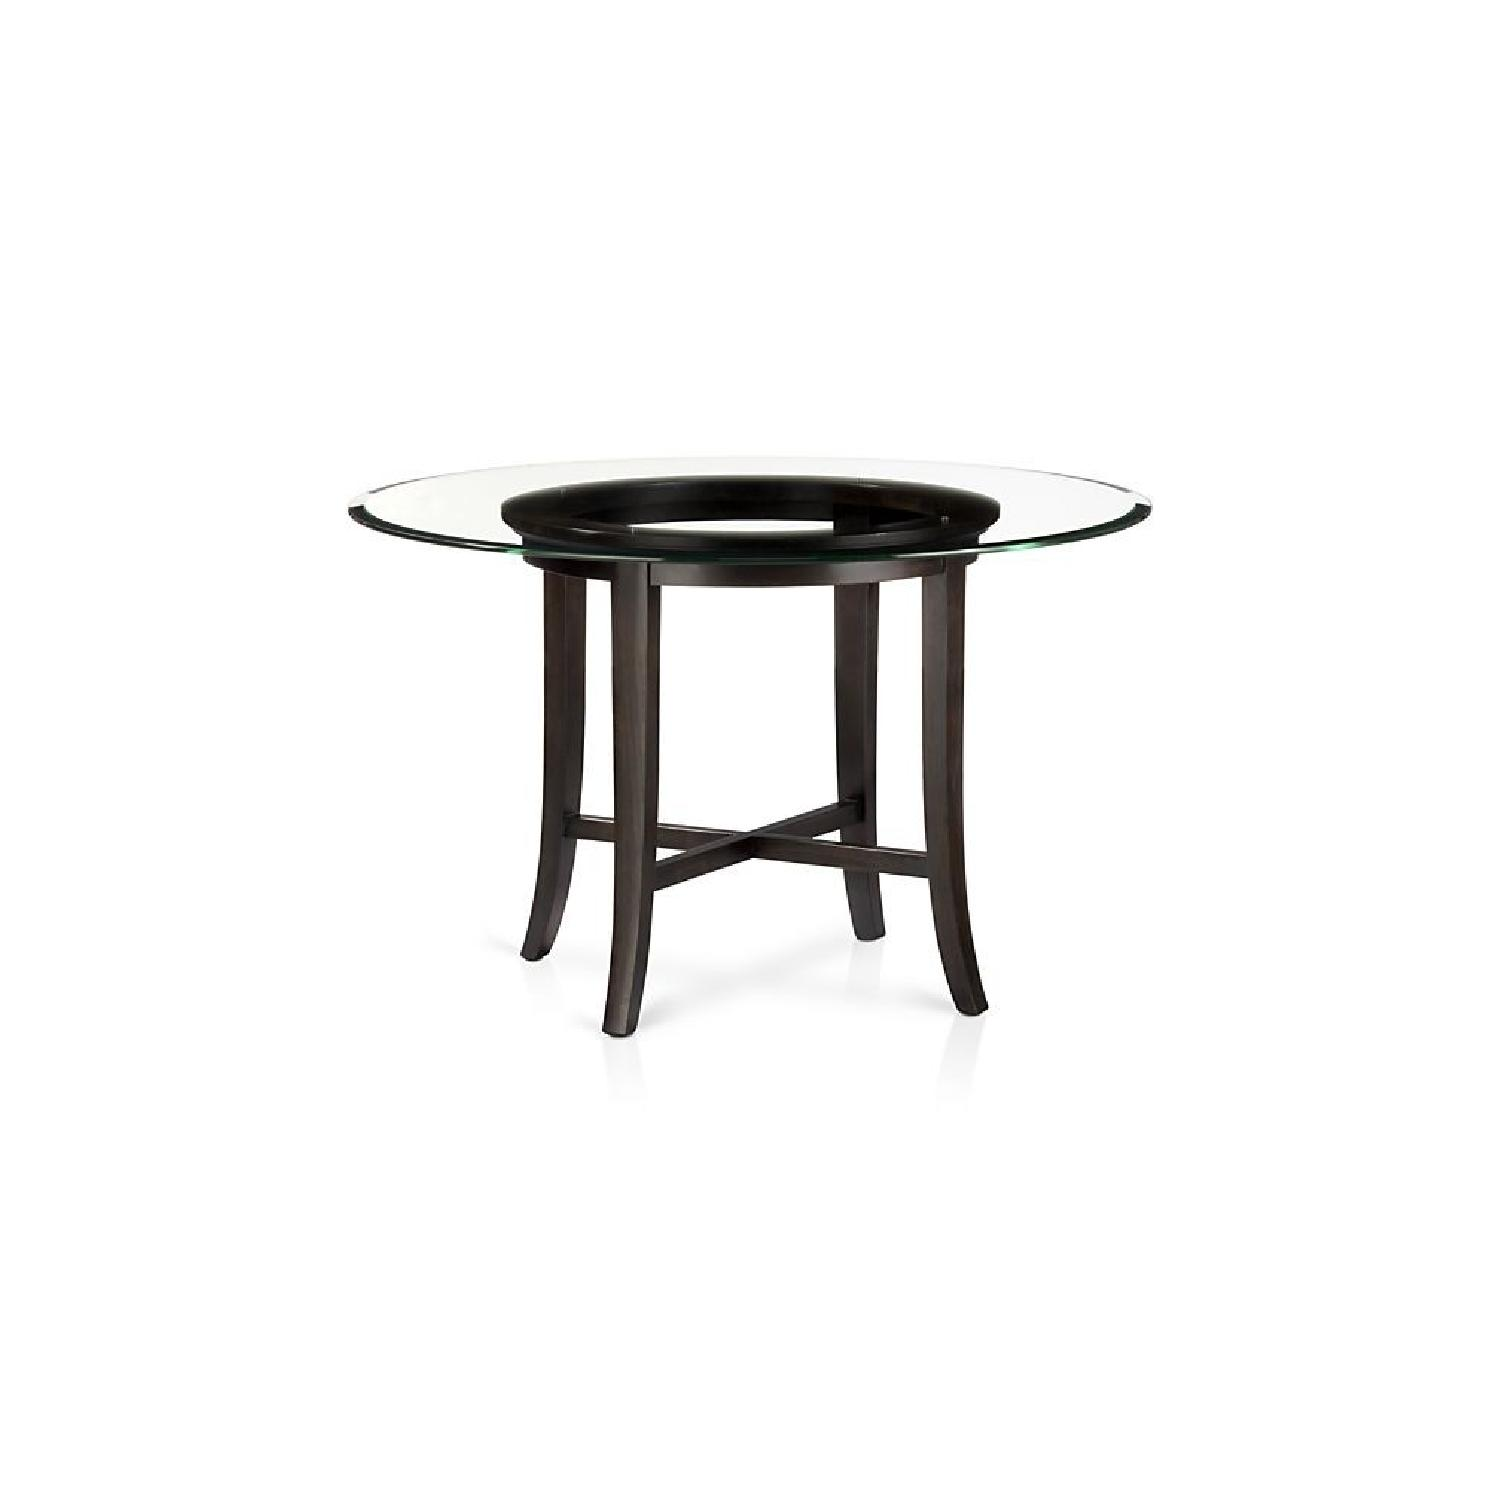 Crate & Barrel Halo Ebony Glass Top Dining Table